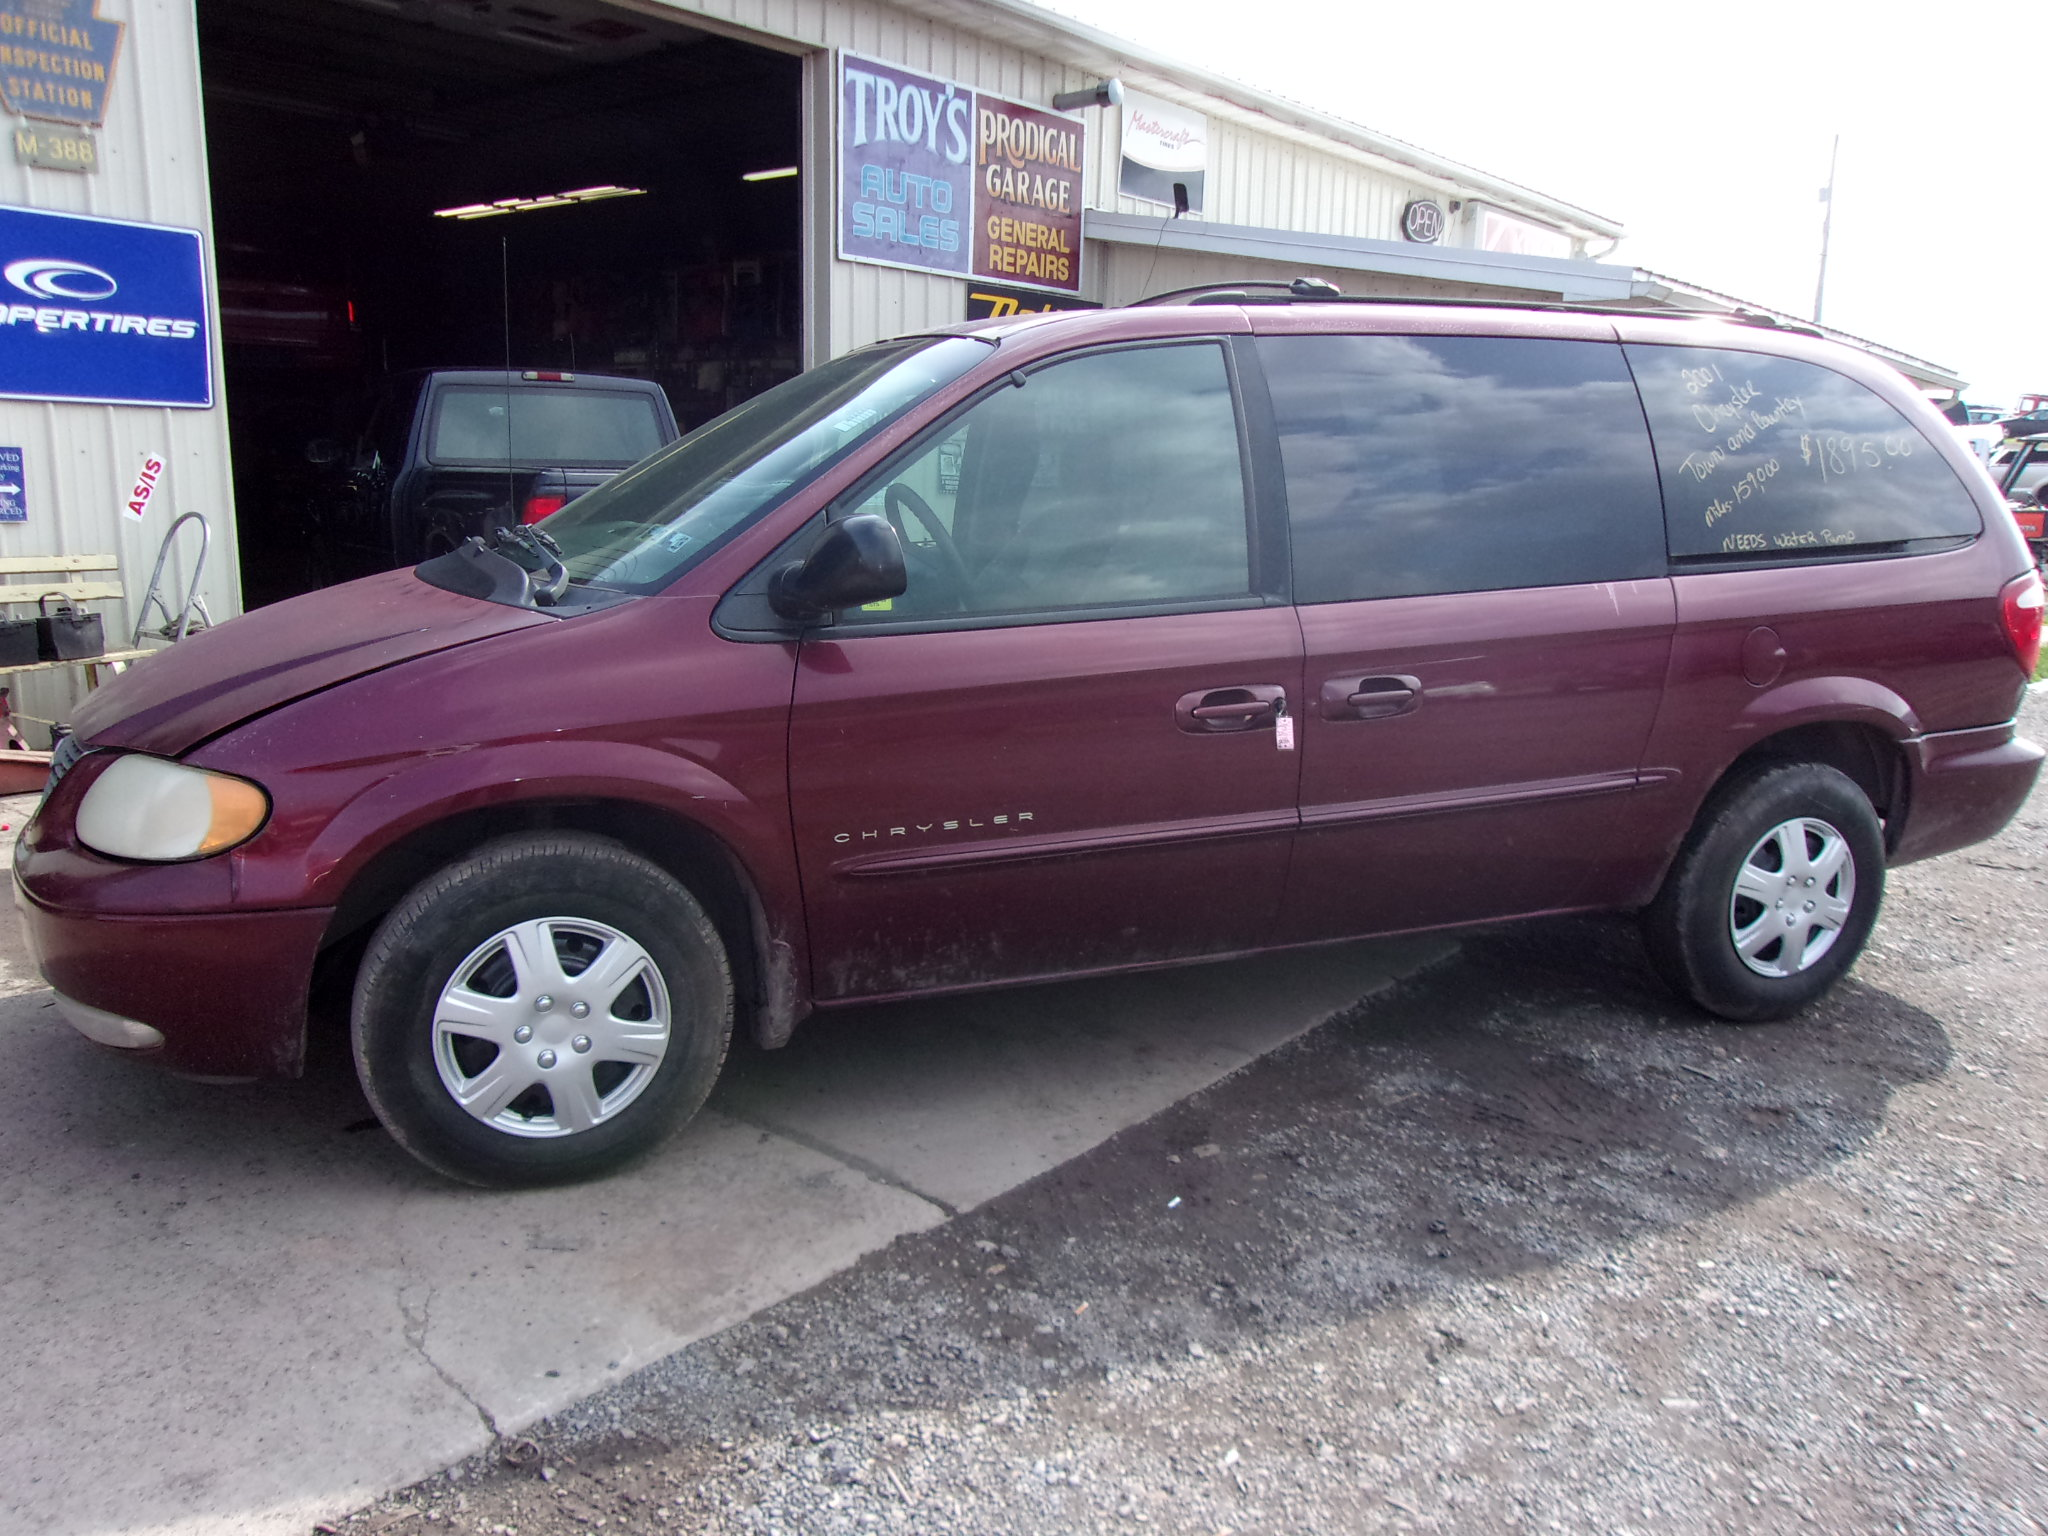 2001 Chrysler Town and Country V075 Troy s Auto Sales Inc